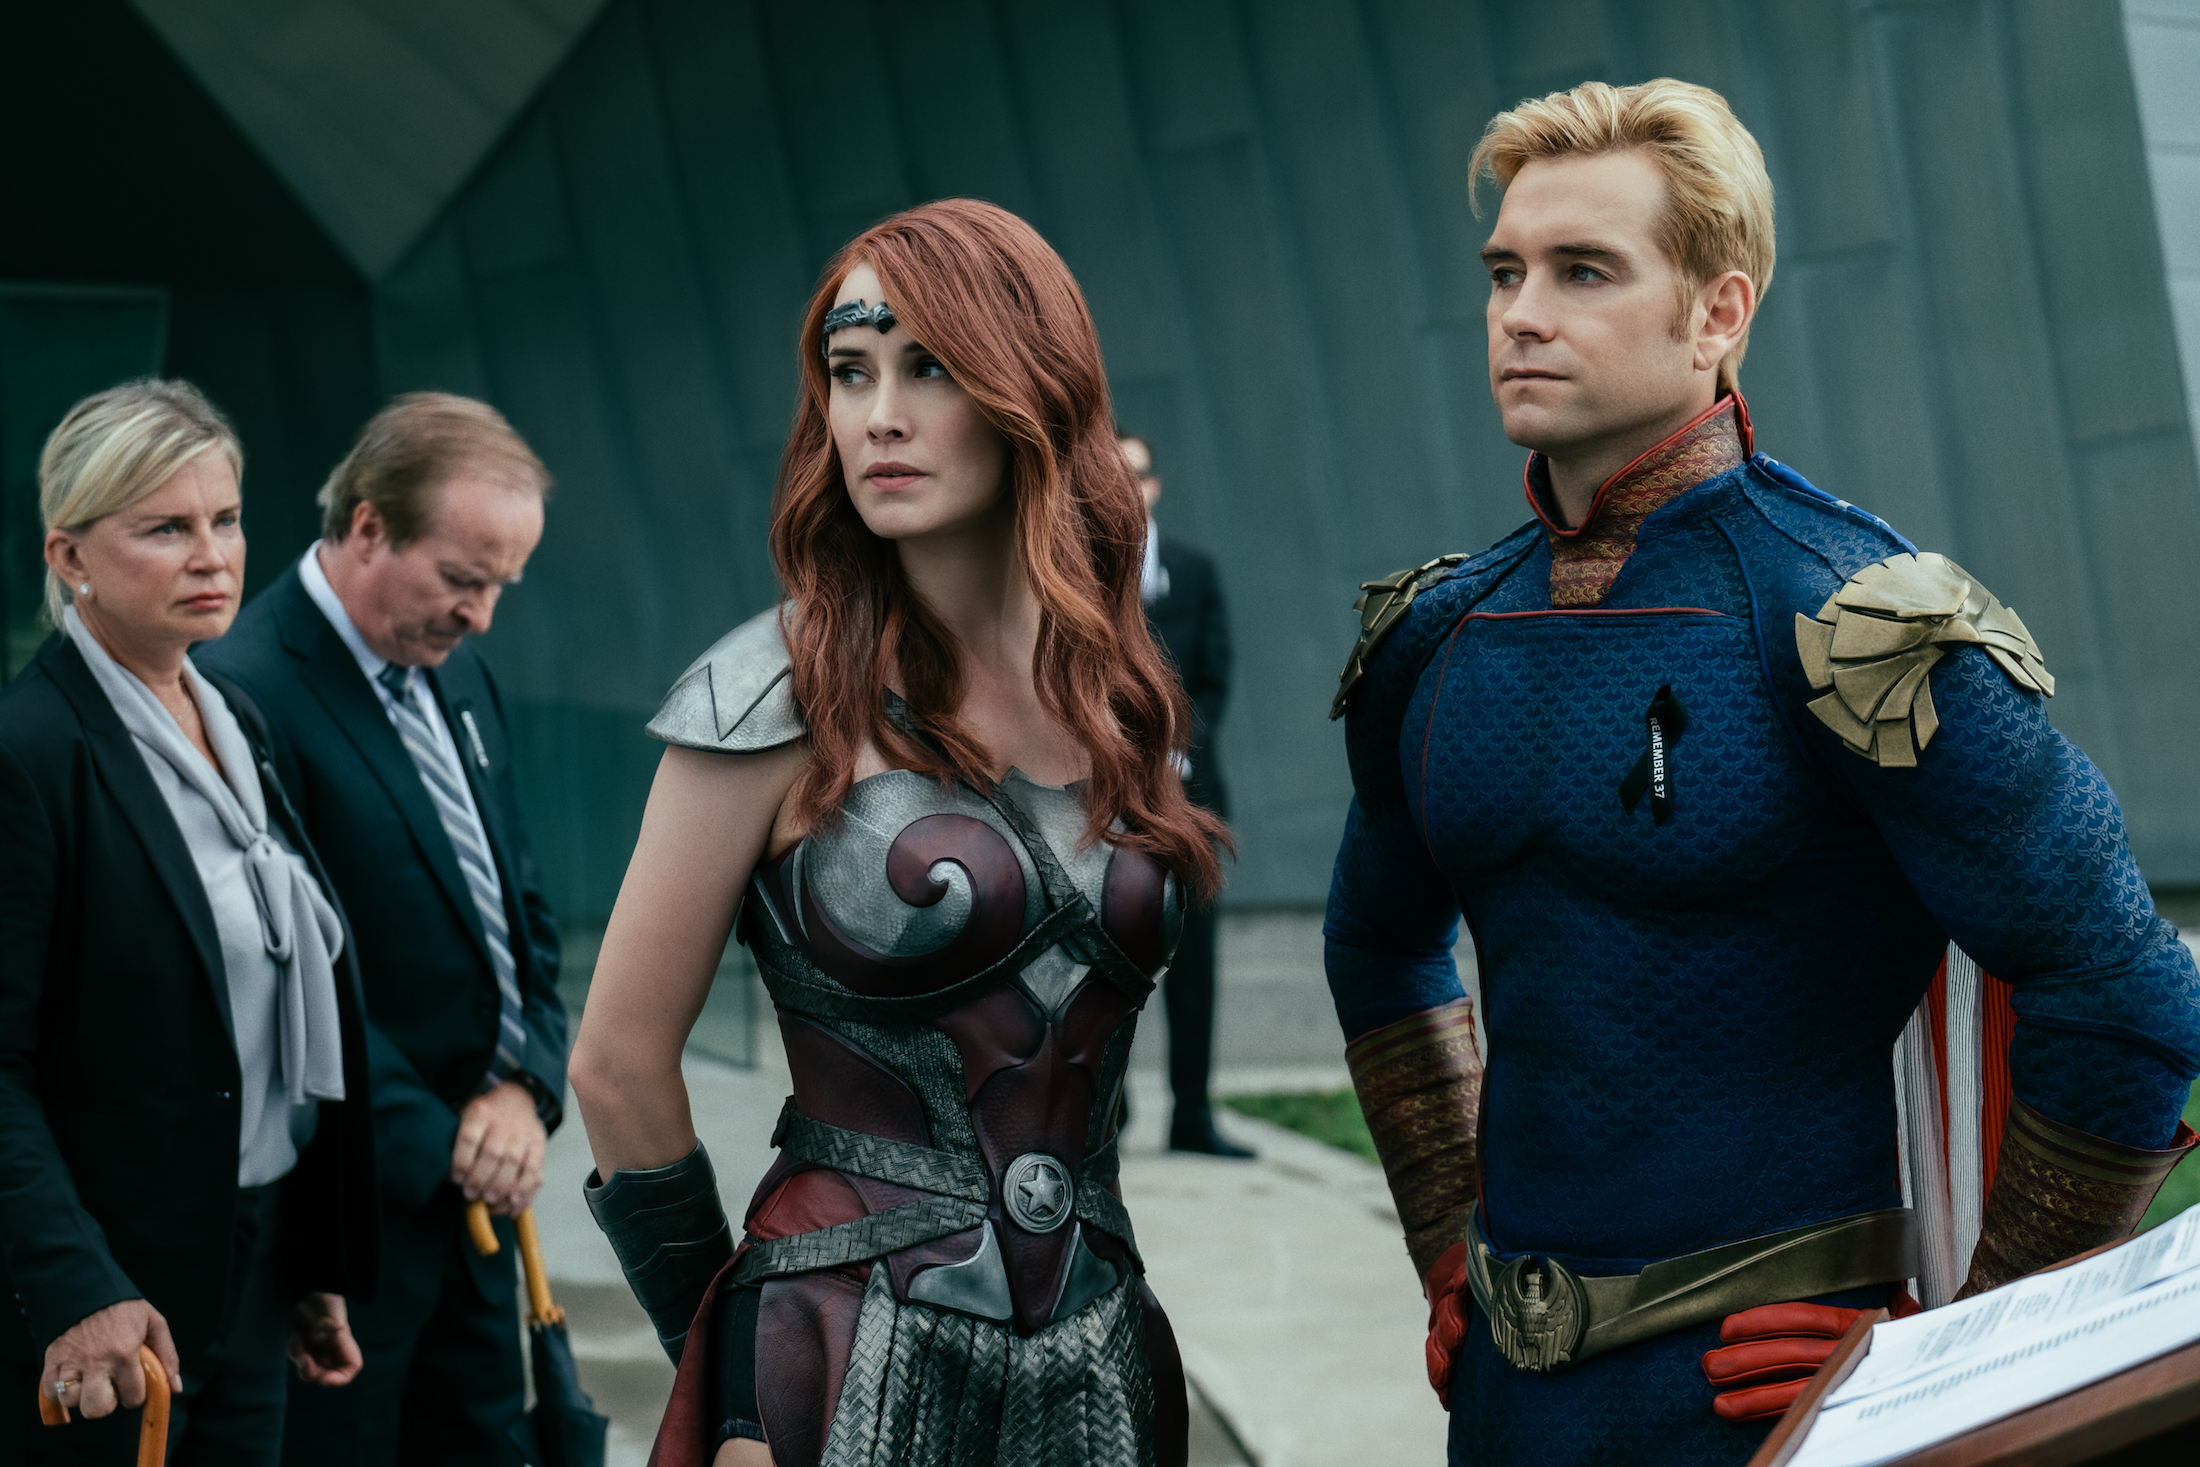 Homelander and Queen Maeve standing at high alert on Amazon's The Boys